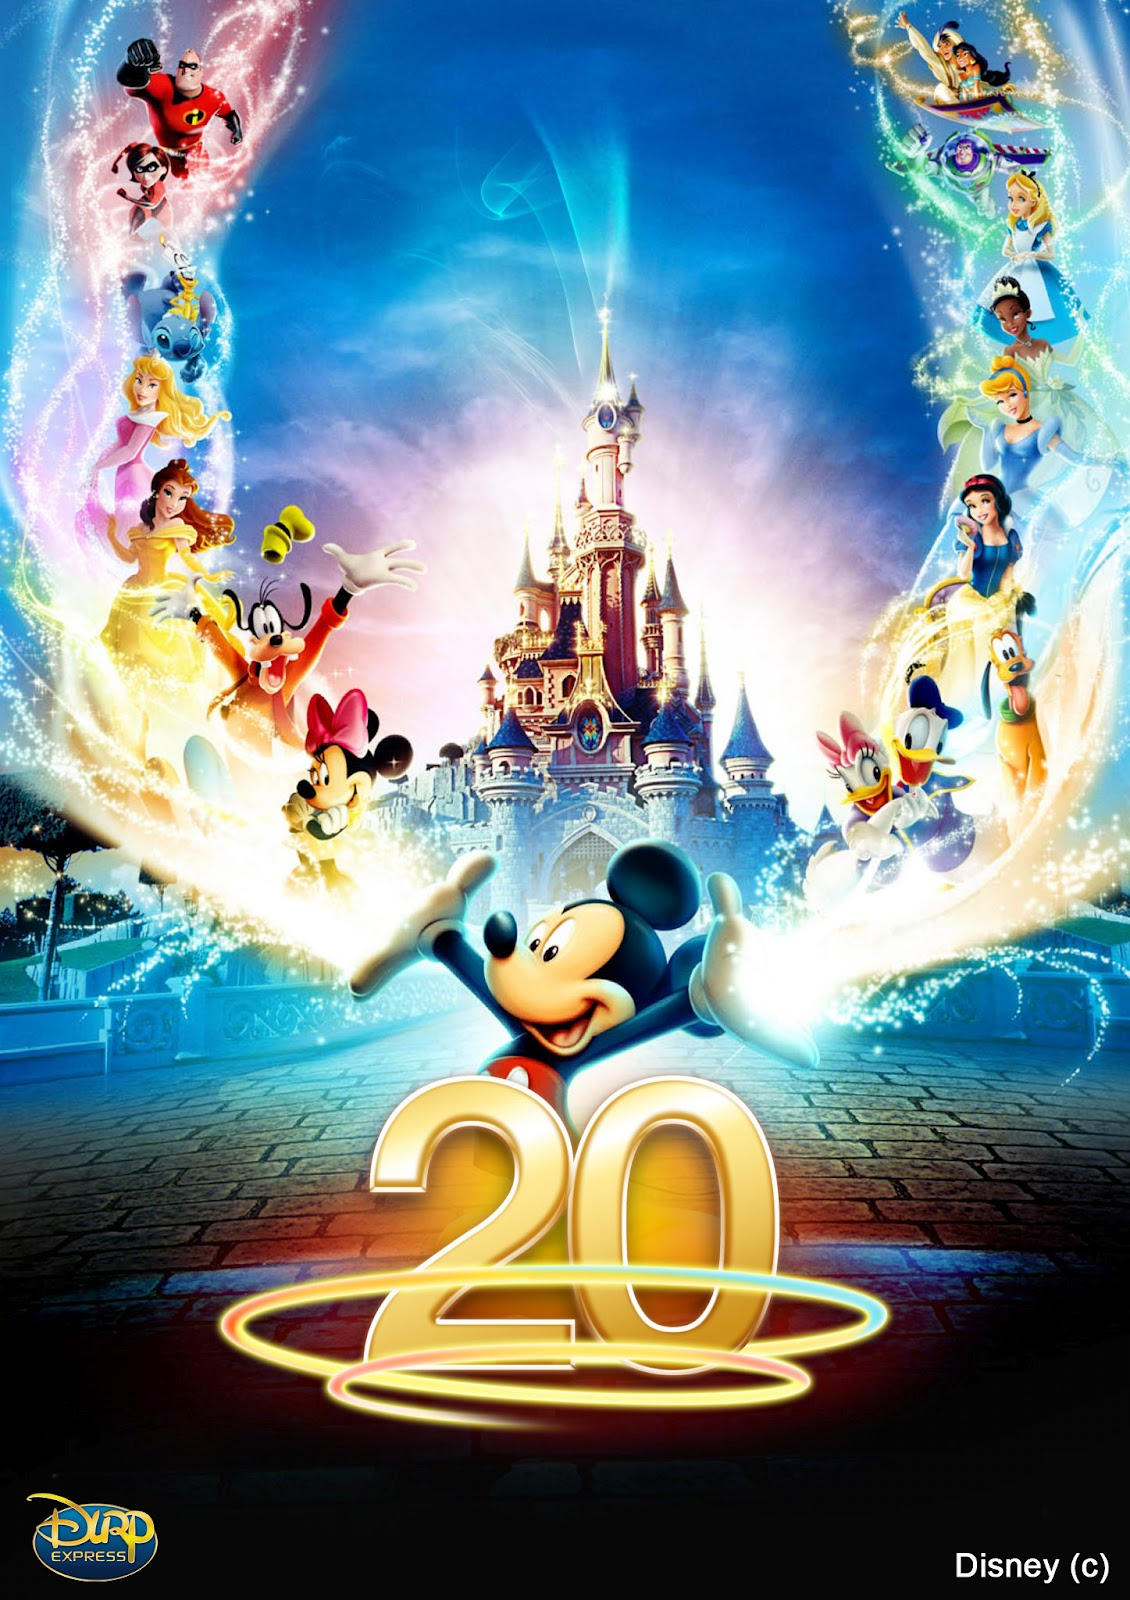 Disneyland paris is now 20